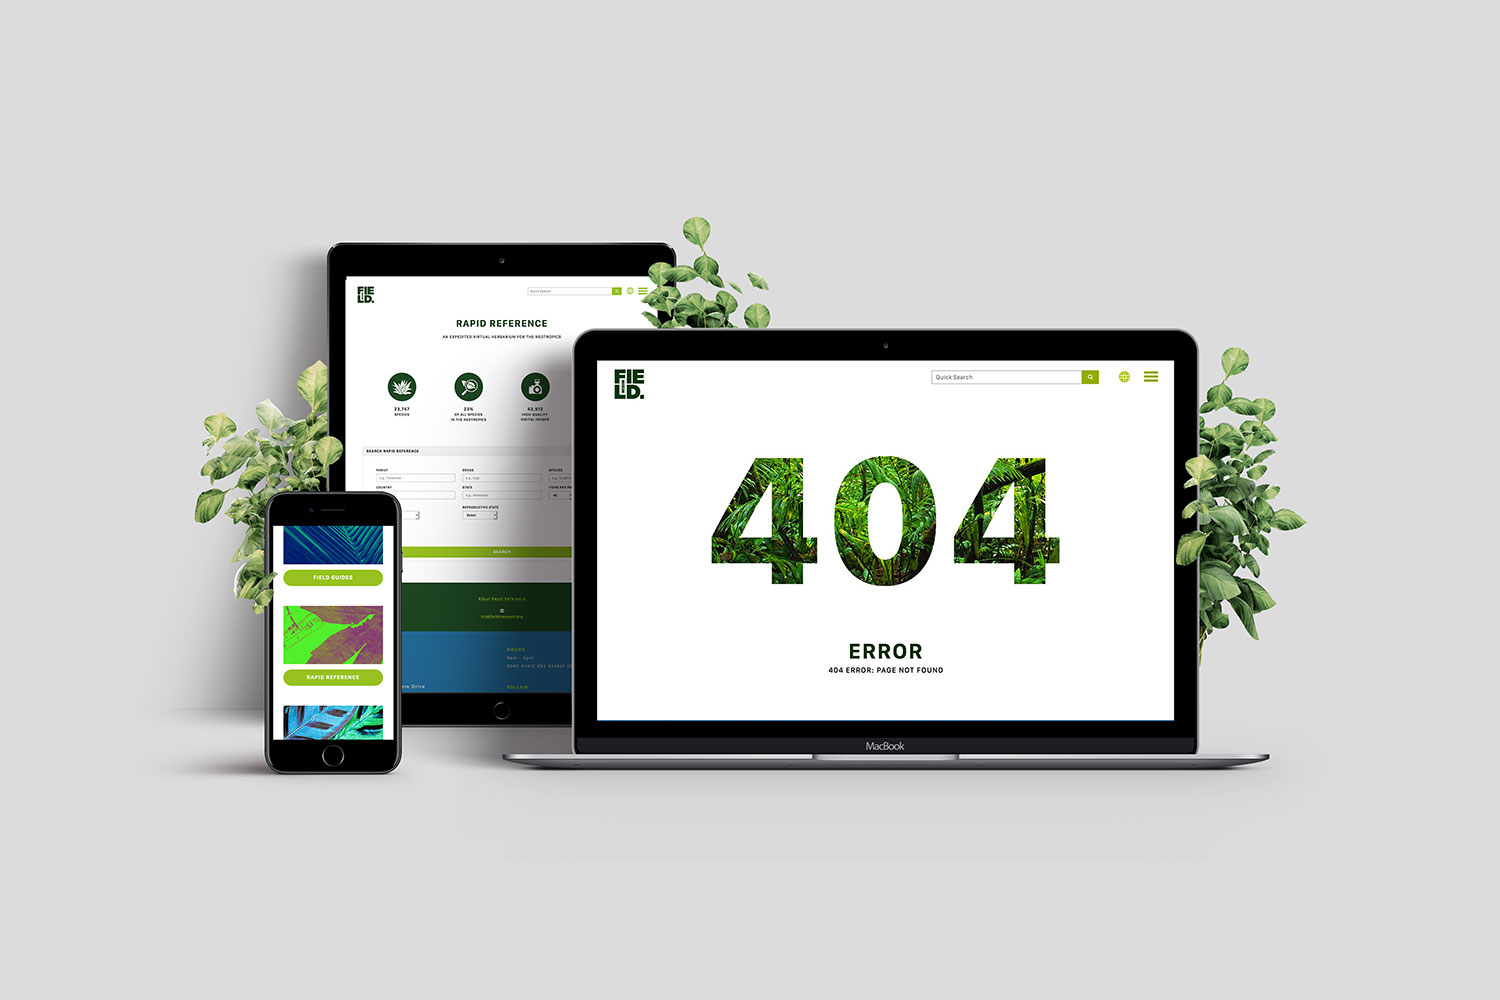 Homepage (mobile), 404, Rapid Reference